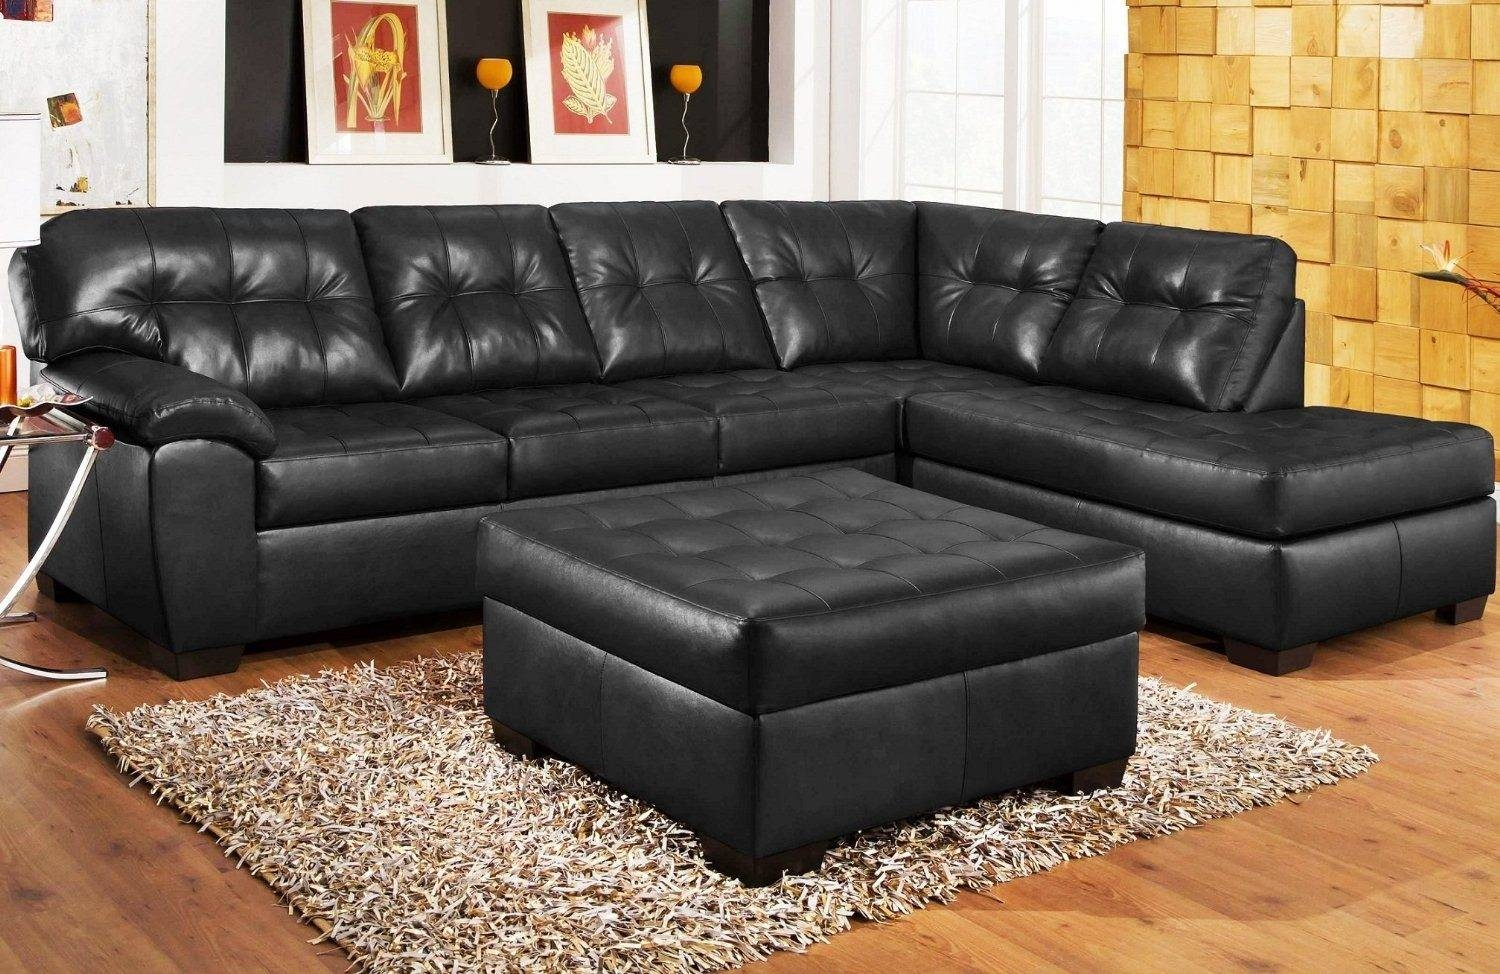 Elegant Cheap Used Sectional Sofas 32 On Abbyson Living Charlotte Within Abbyson Living Charlotte Beige Sectional Sofa And Ottoman (Image 14 of 30)